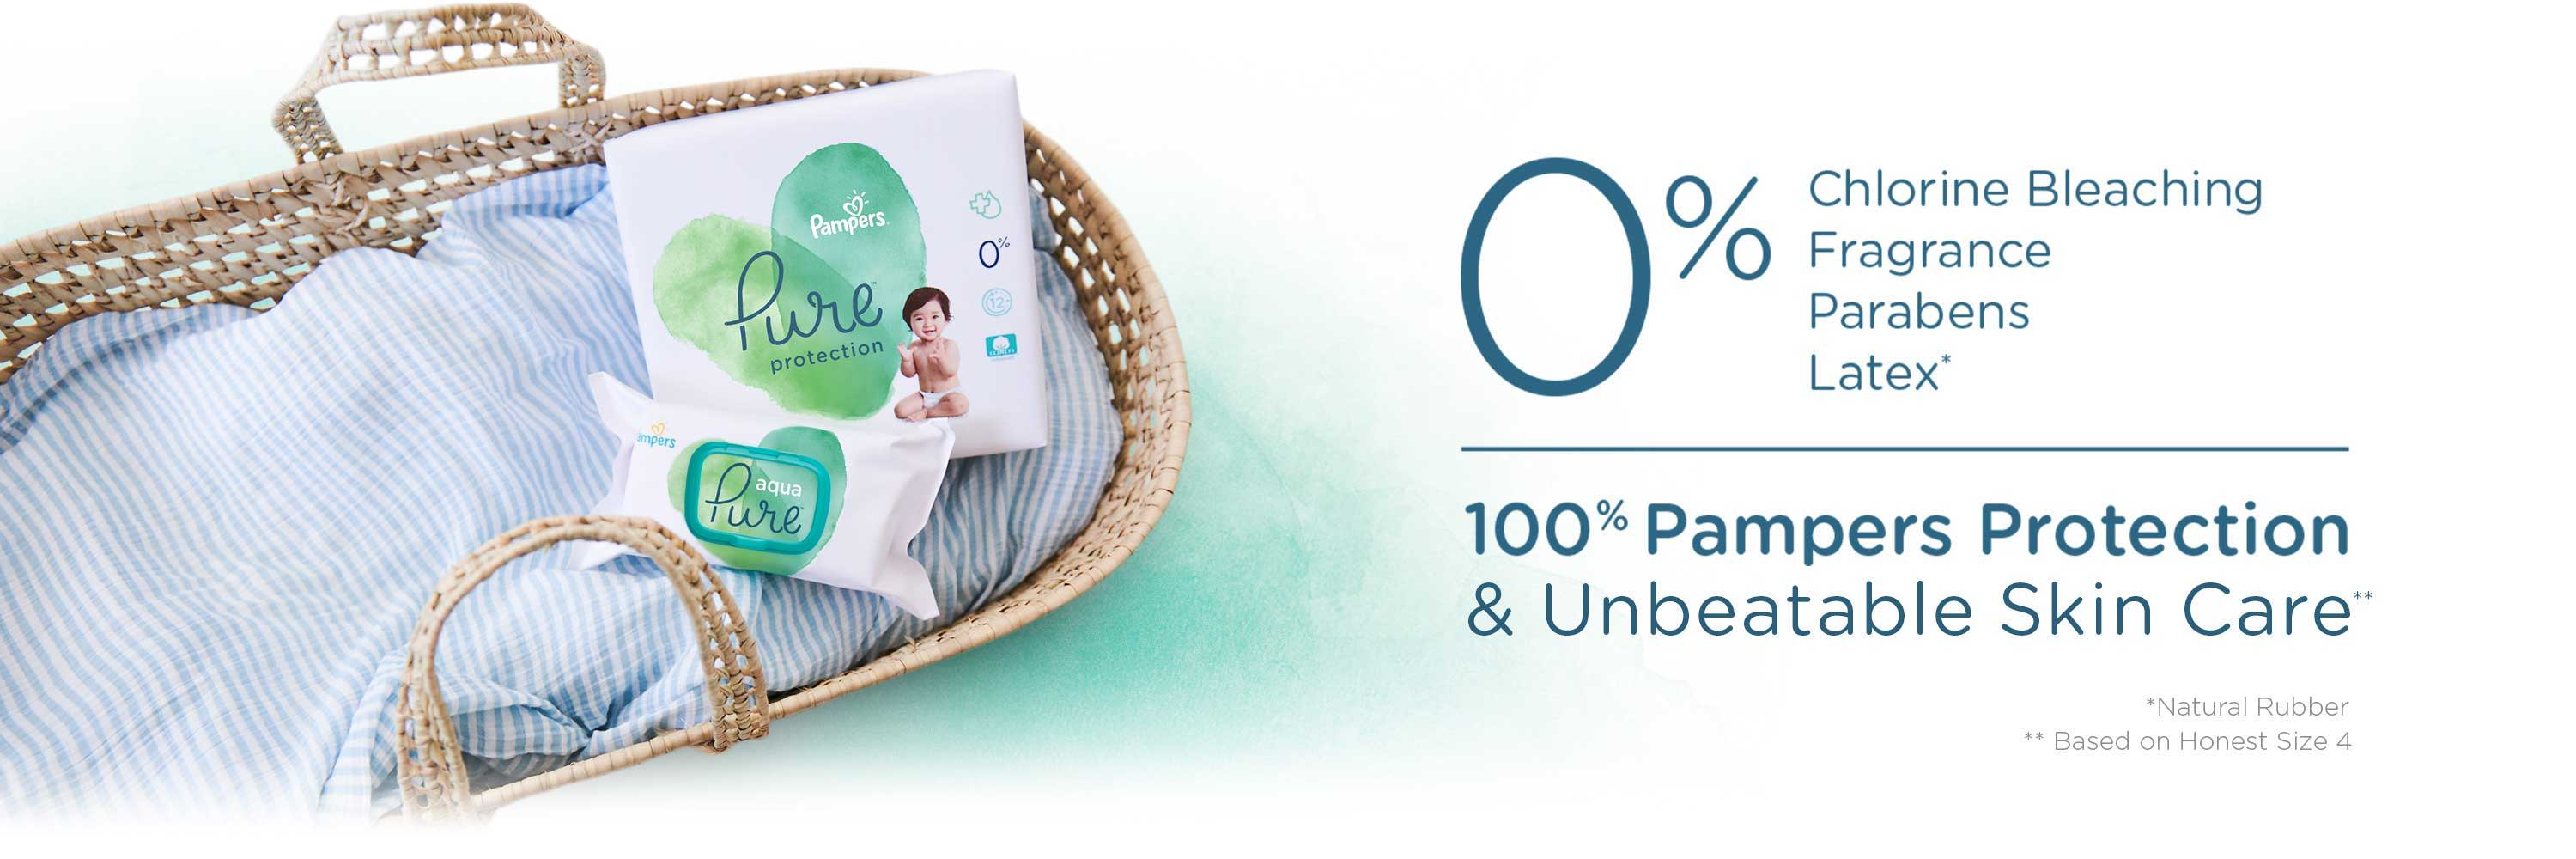 Pampers Pure Protection Diapers Have 0% Chlorine Bleaching, Fragrance, Parabens and 100% Pampers Protection